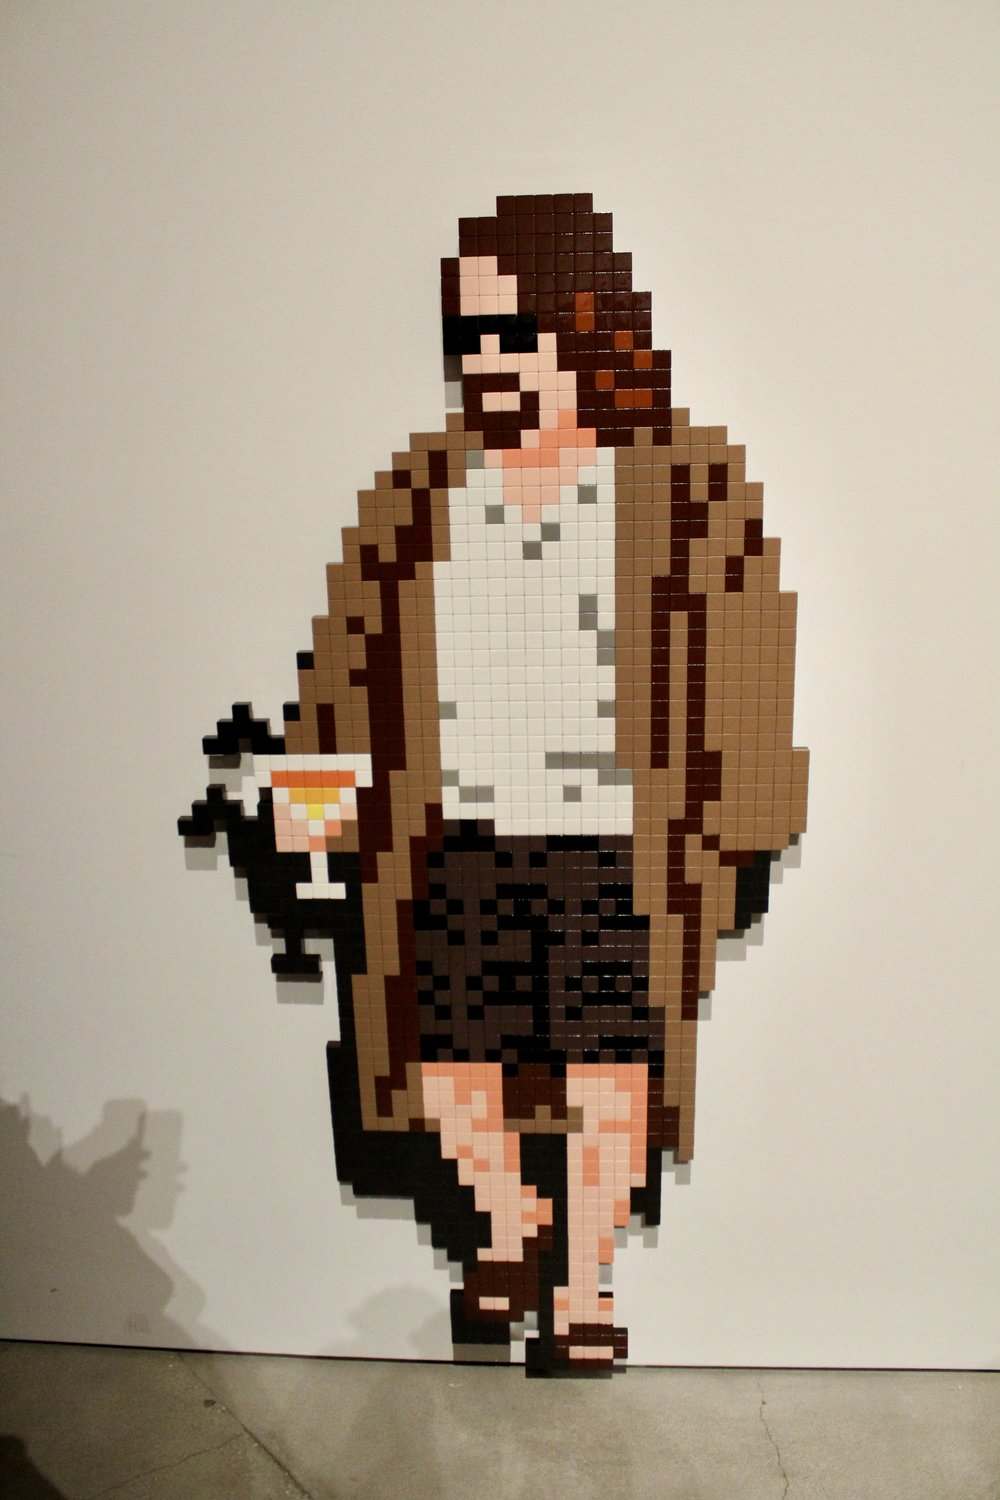 Invader's The Dude